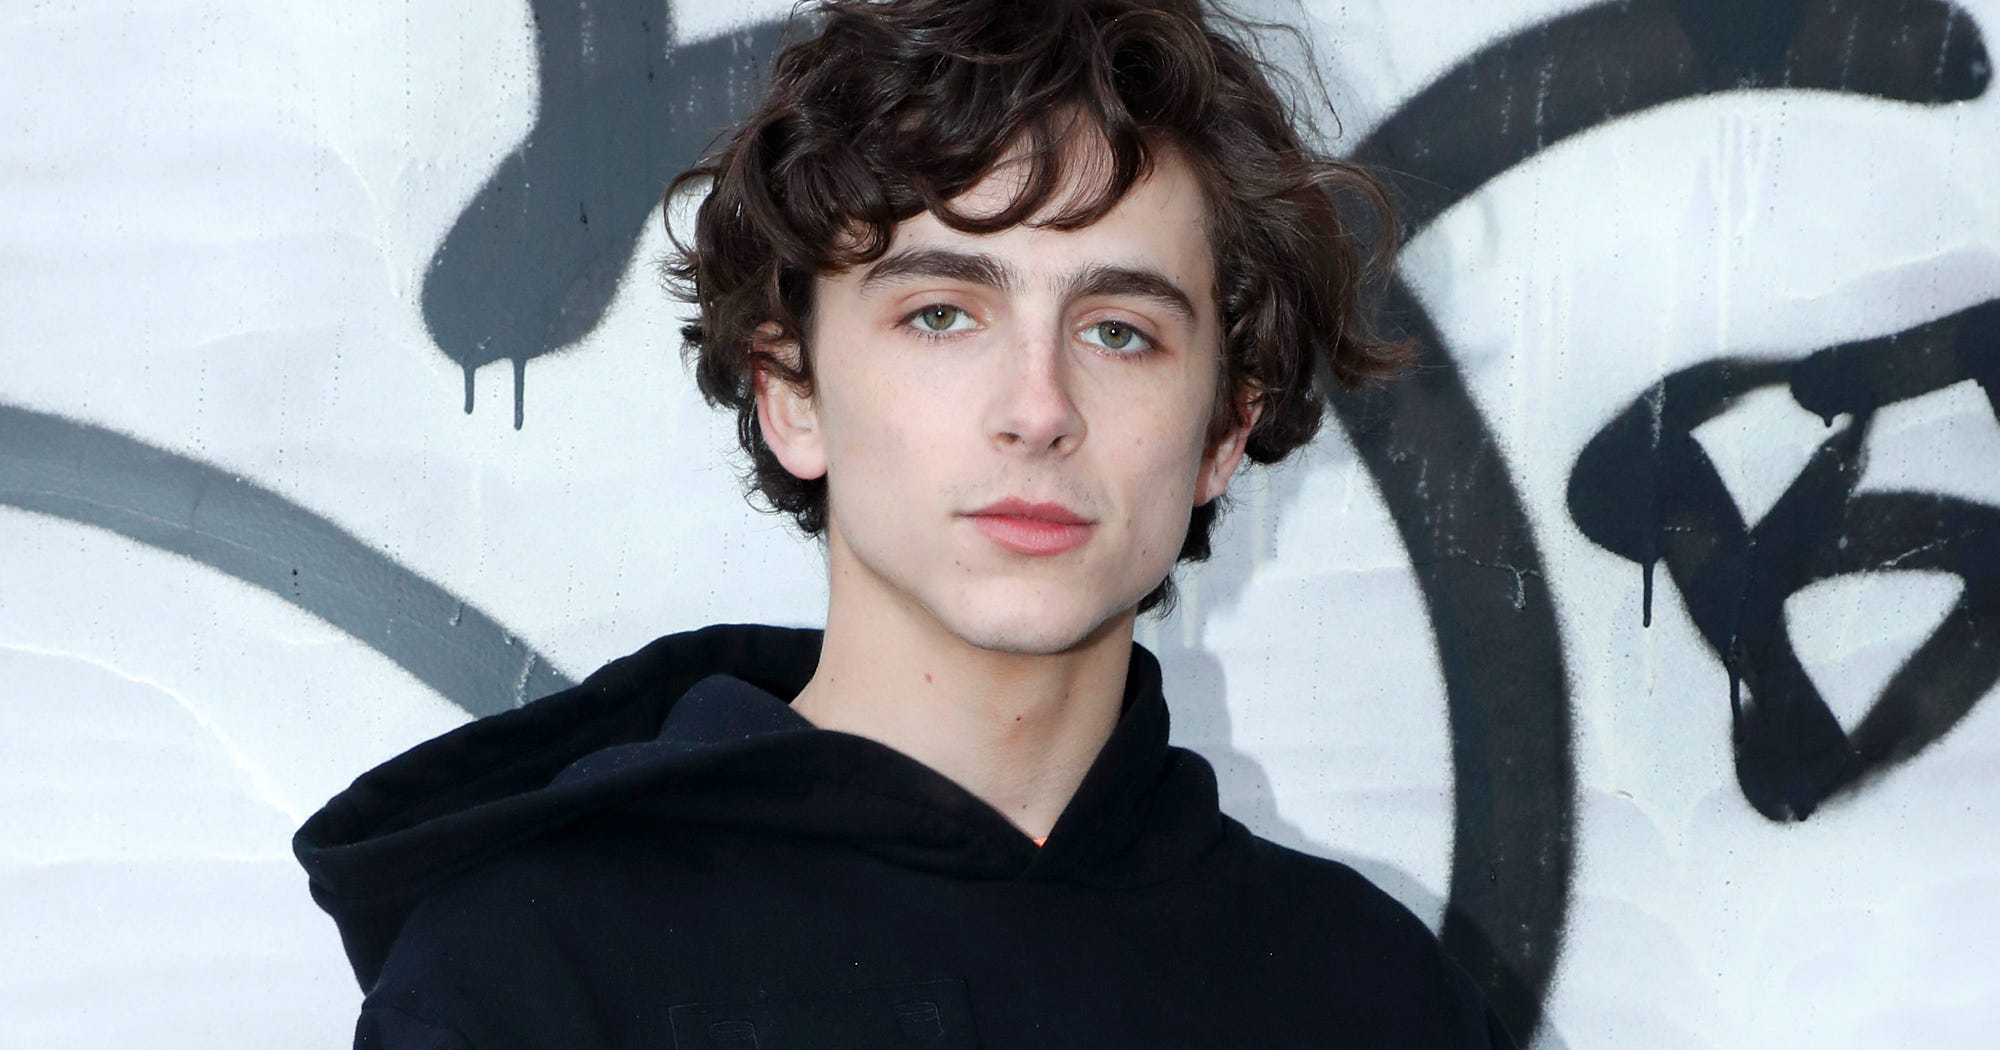 Club Chalamet: Meet The 30-Year-Old+ Super Fans Of Timothée